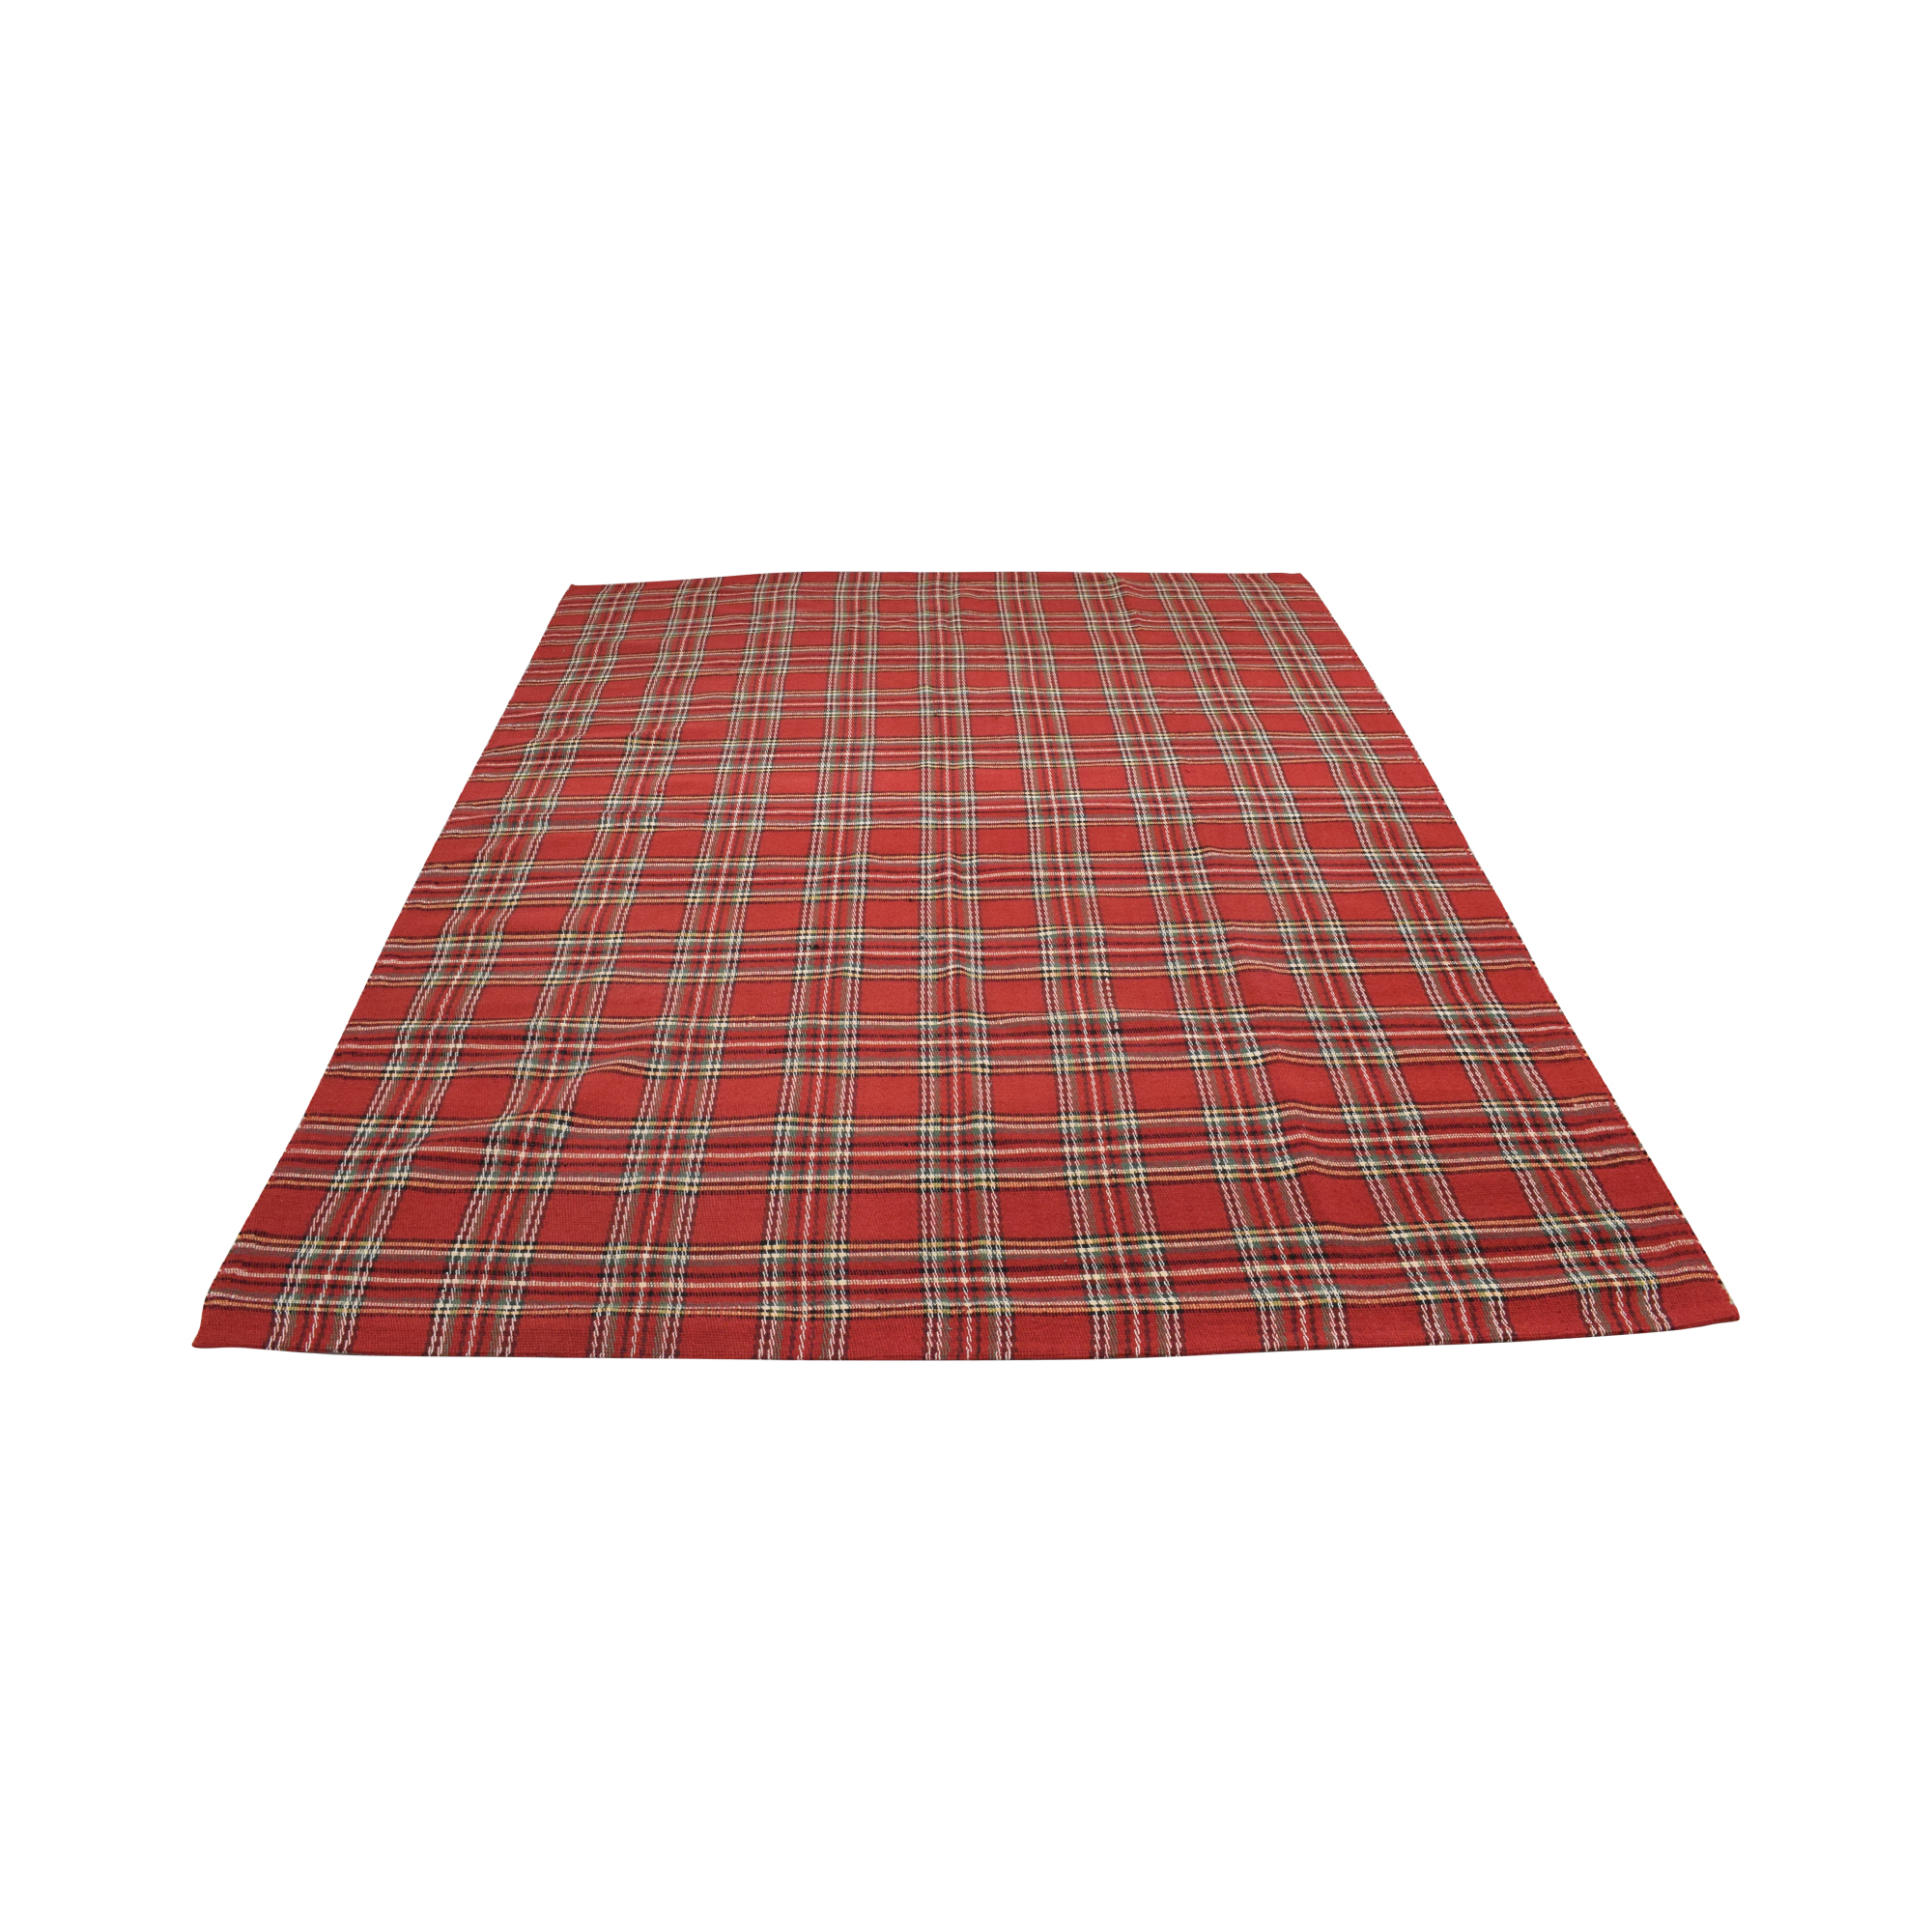 Capel Rugs Capel Currituck Plaid Rug nyc